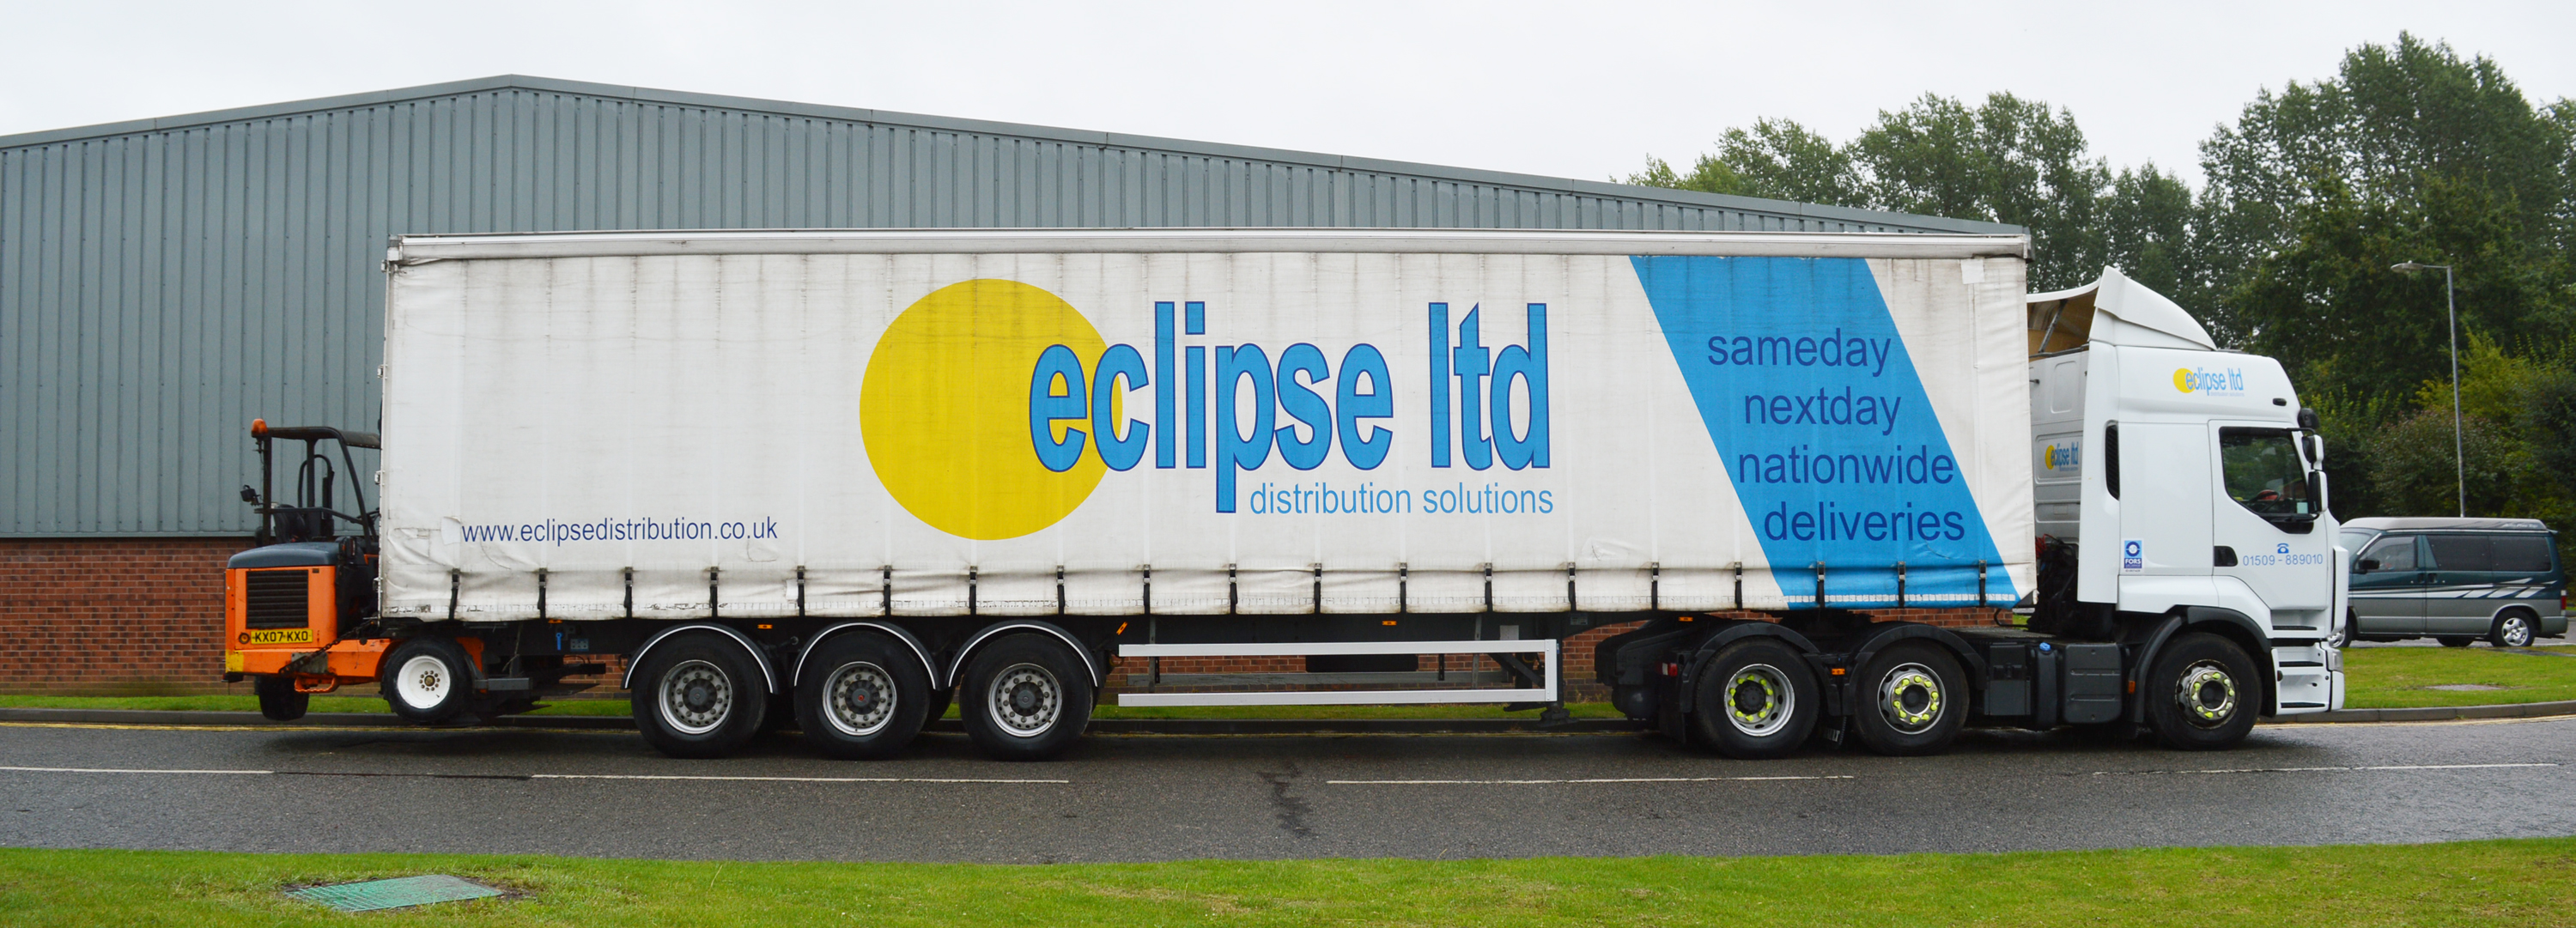 An image showing the side view of an Eclipse Distribution lorry parked outside.